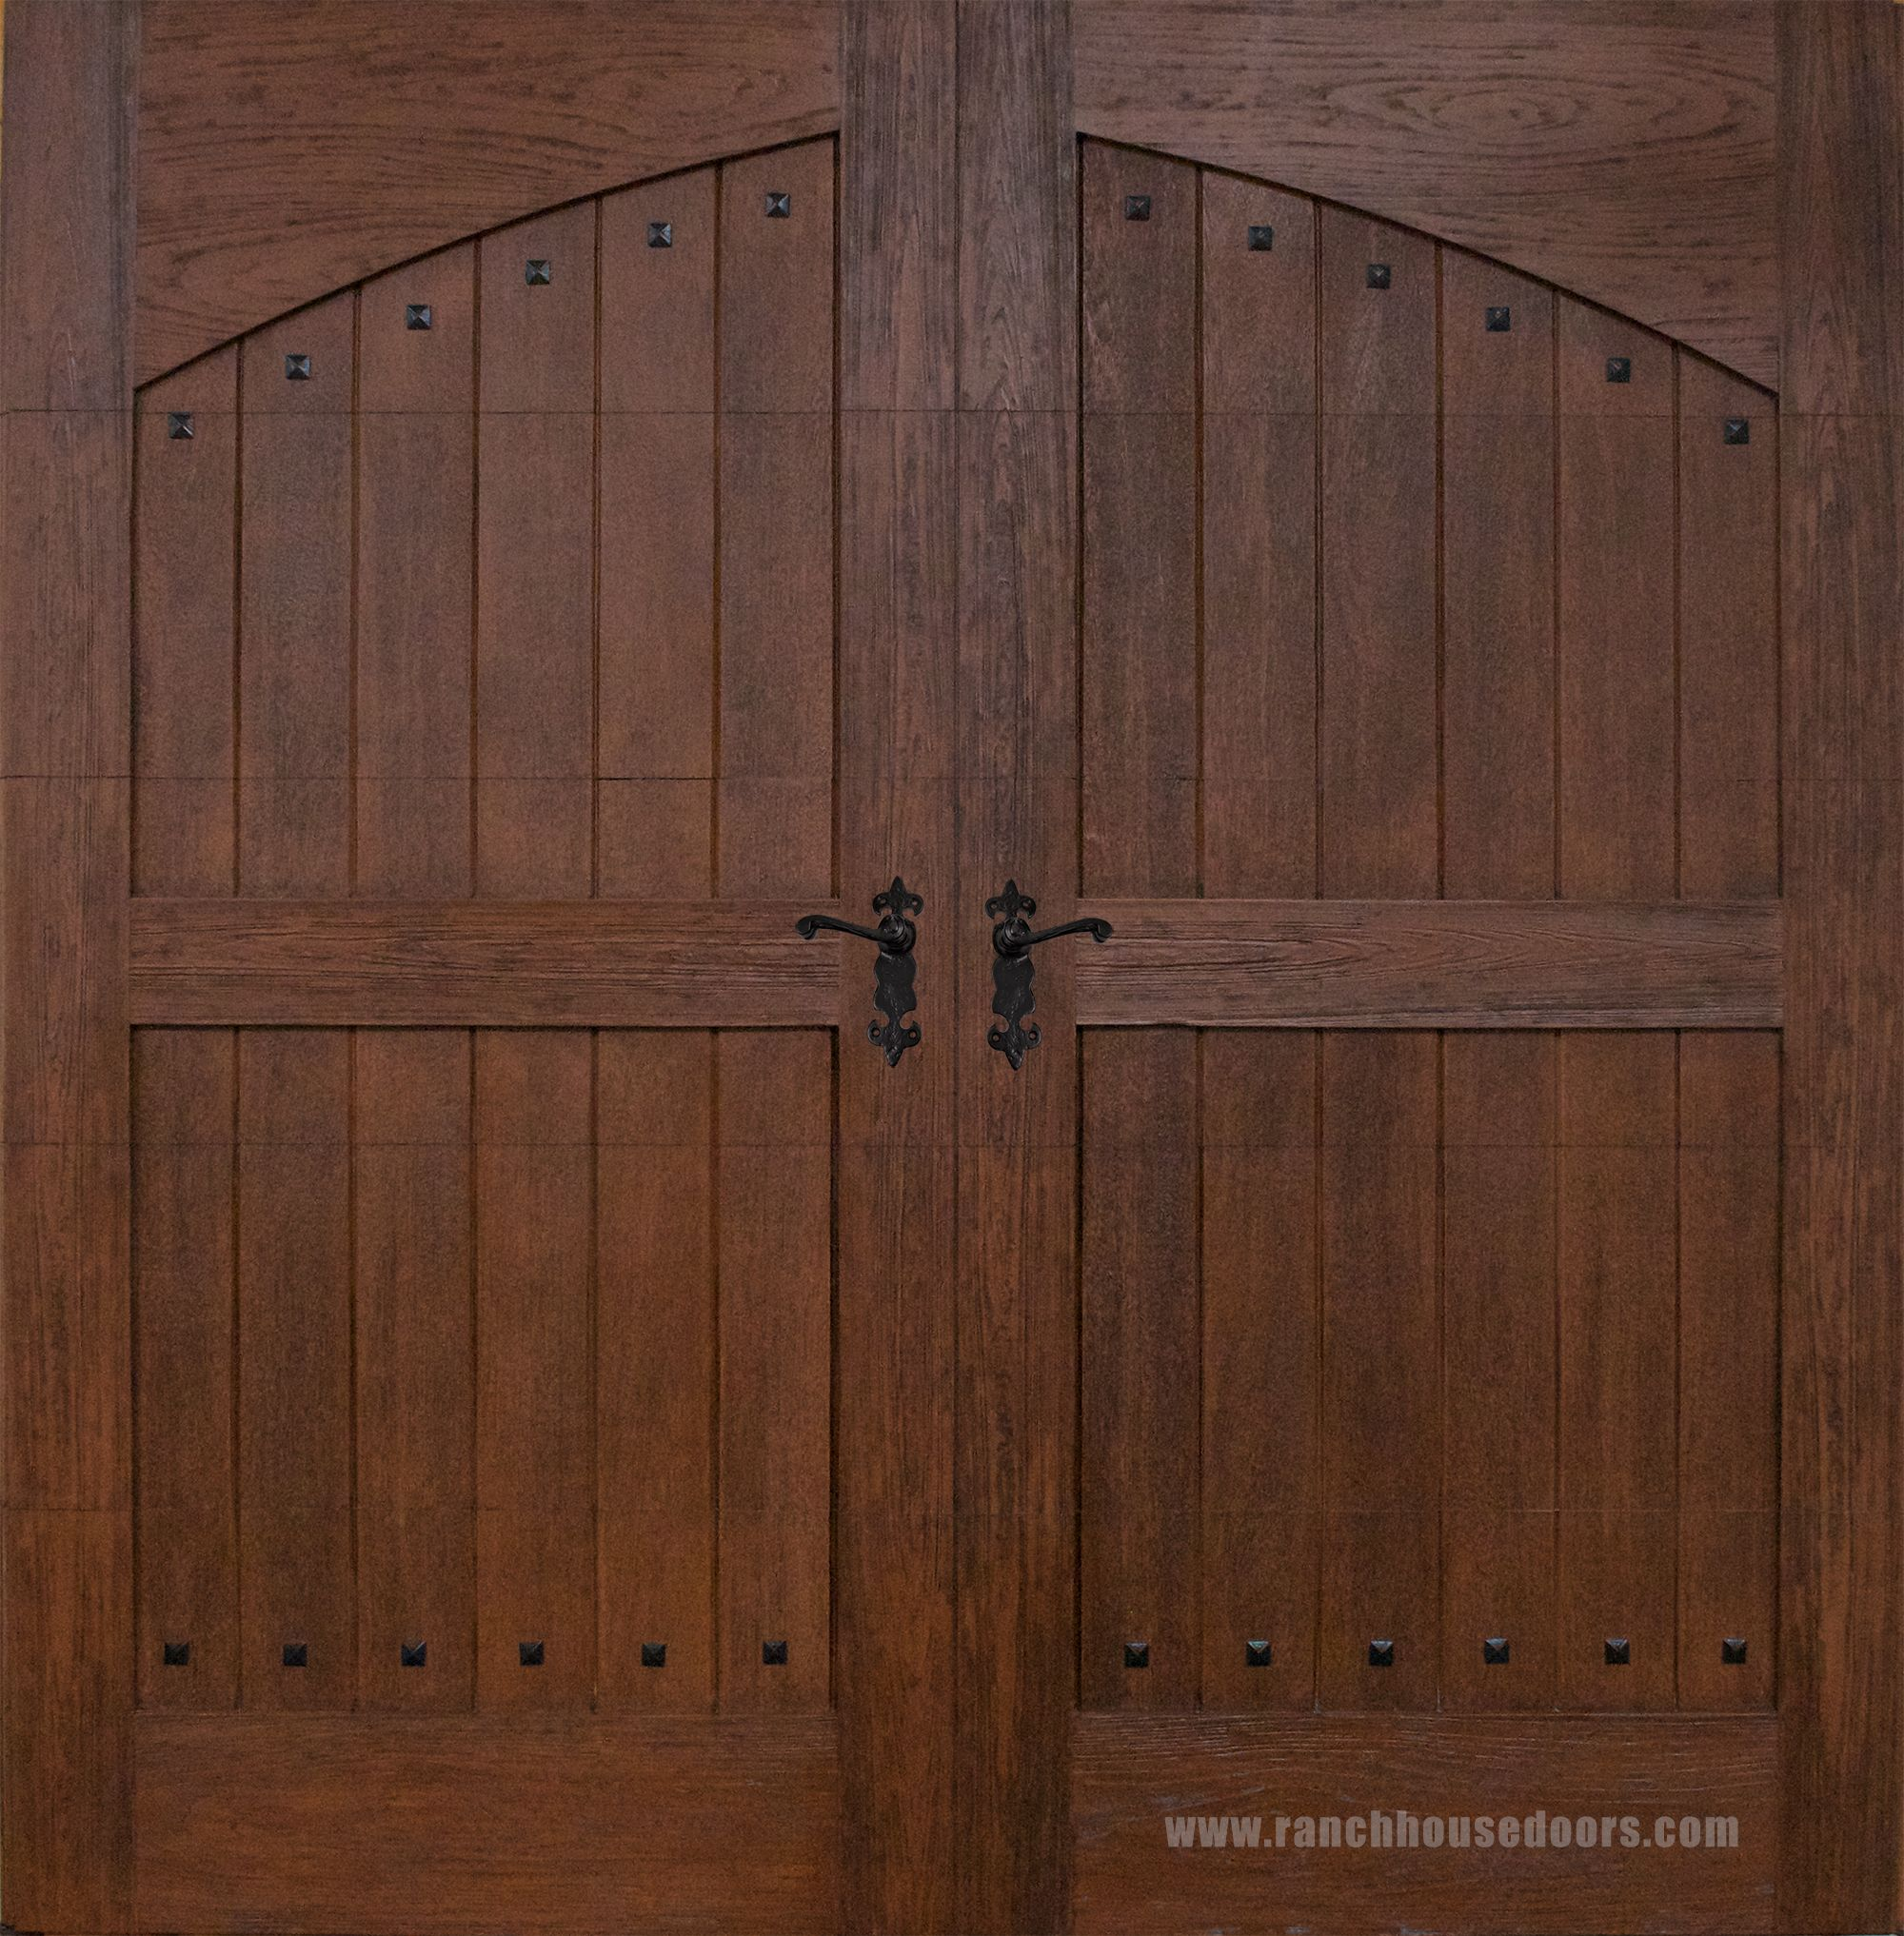 Ranch House Doors Model 302 Elements Collection Clear Cypress Faux Wood Garage Door With Fh 510 Iron Door Faux Wood Garage Door Wood Garage Doors Garage Doors